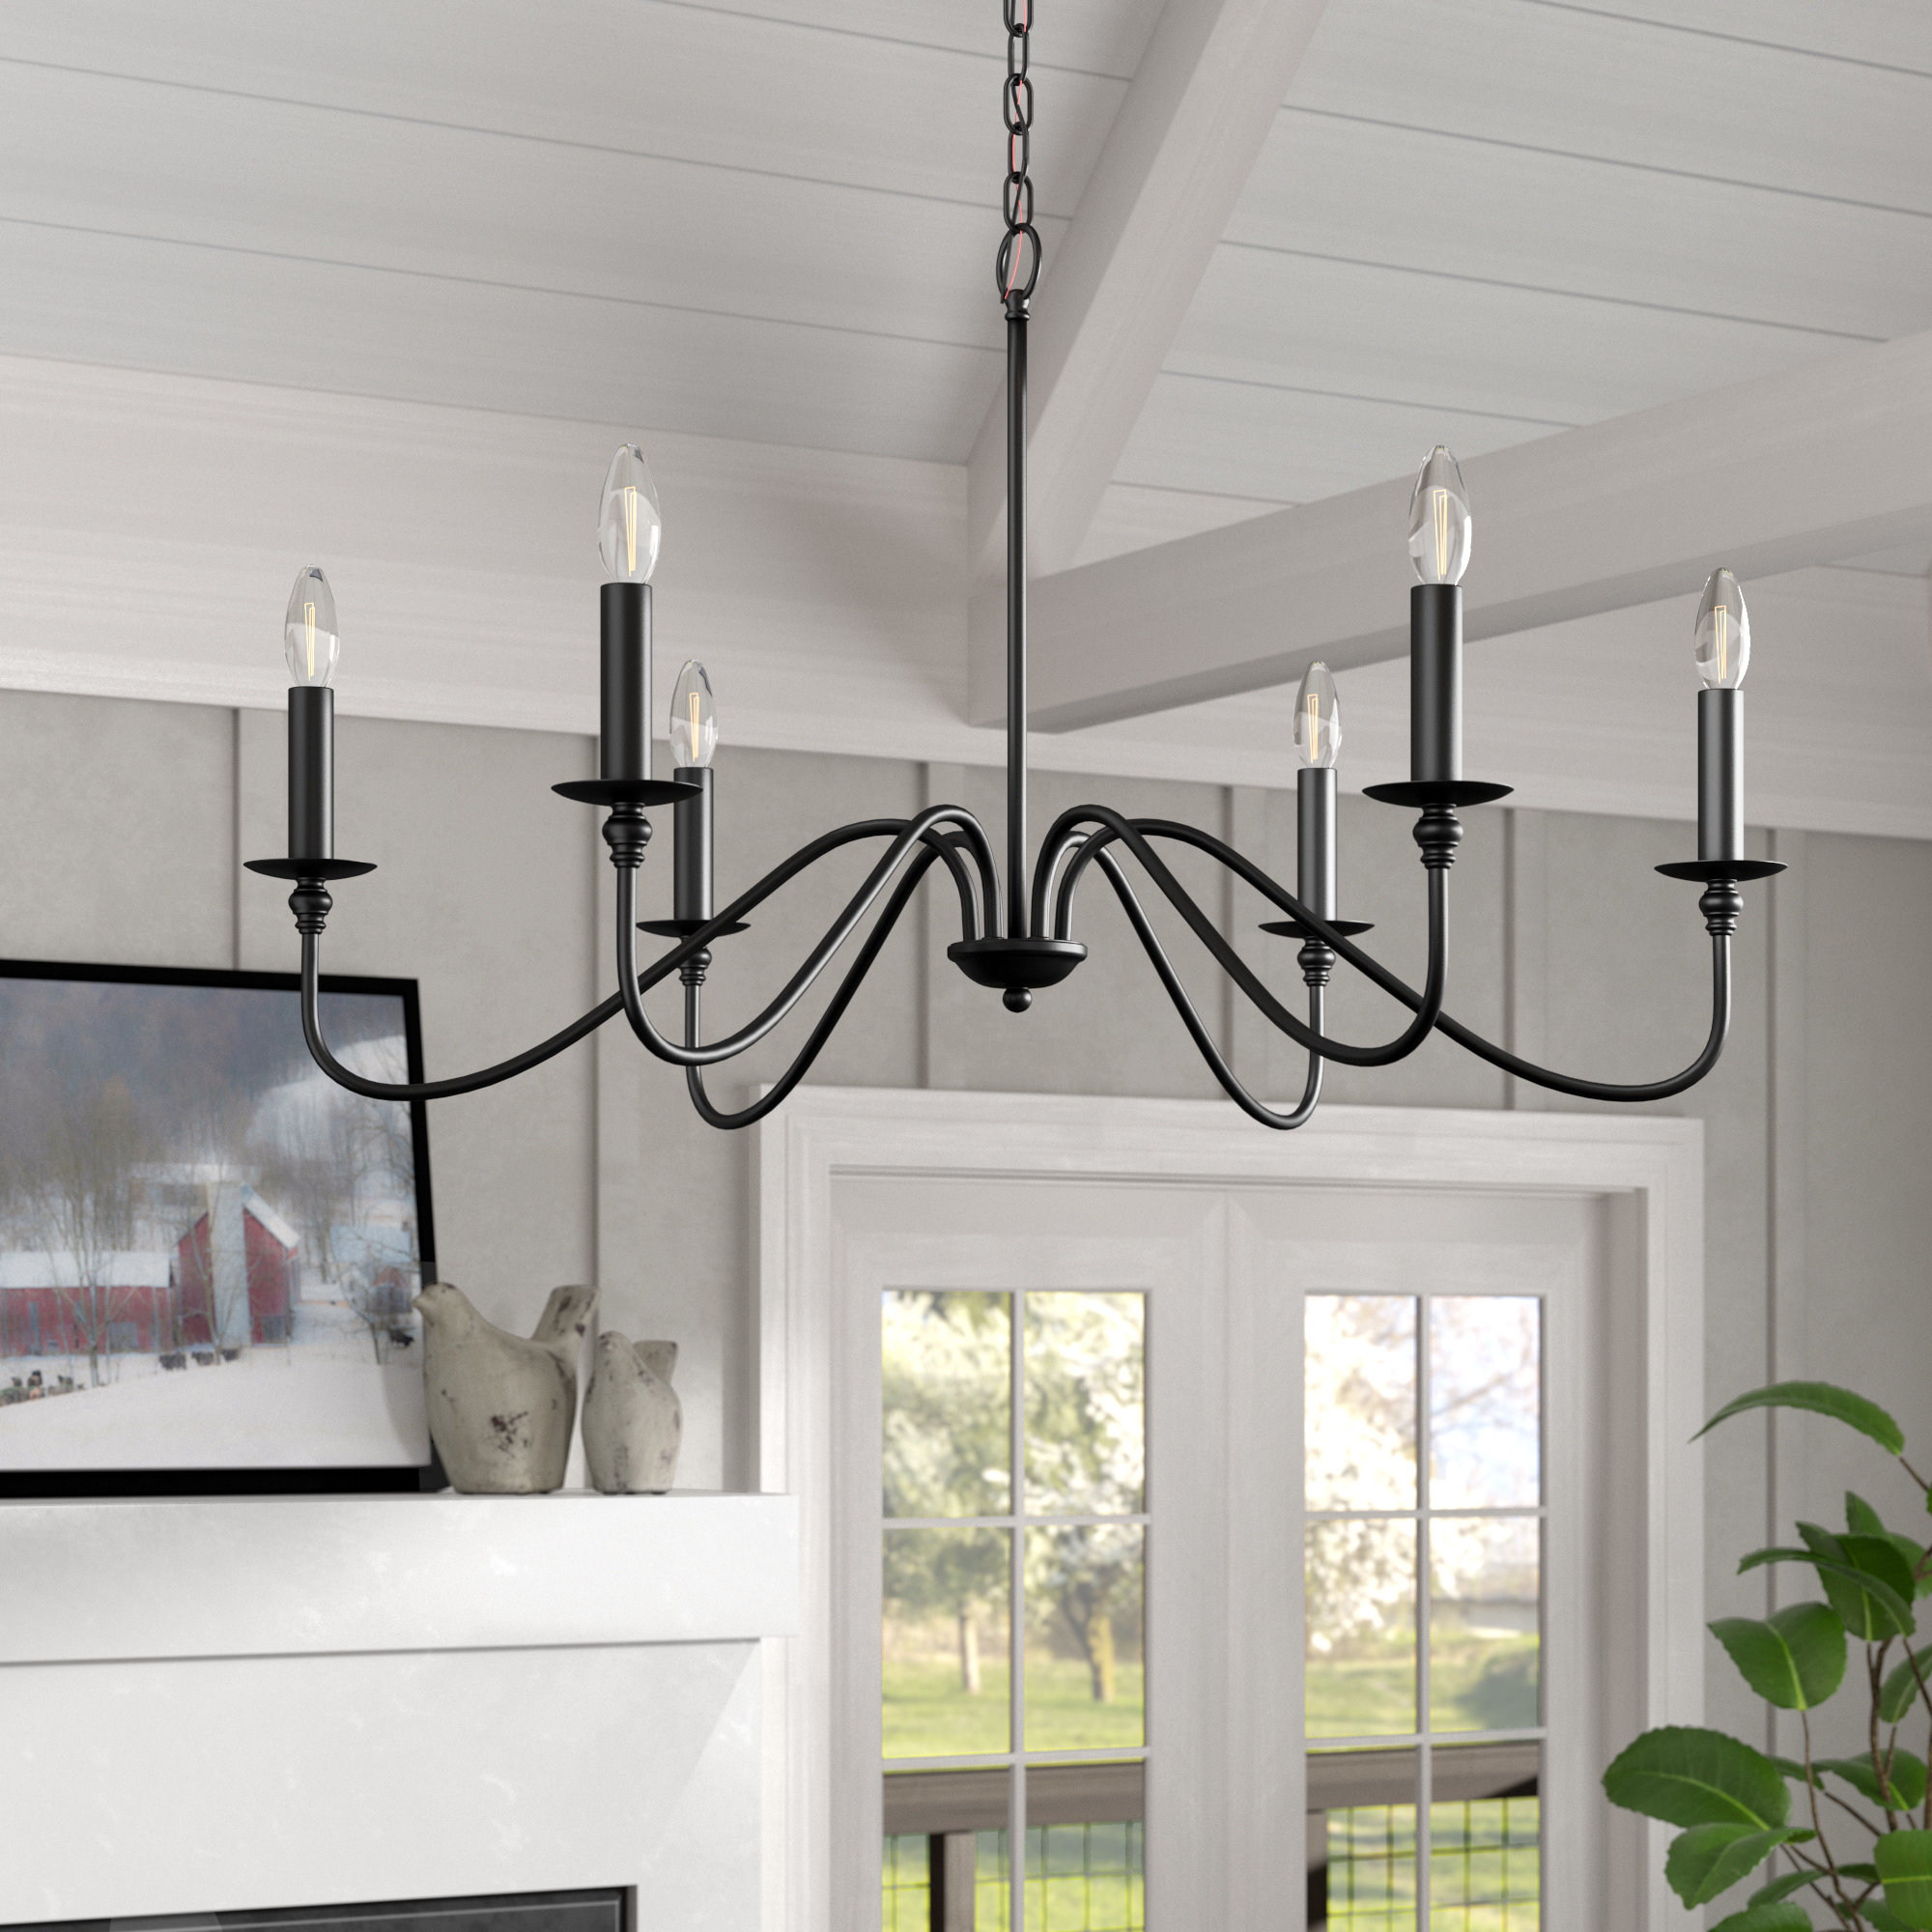 Hamza 6 Light Candle Style Chandelier Within 2019 Shaylee 8 Light Candle Style Chandeliers (View 11 of 25)